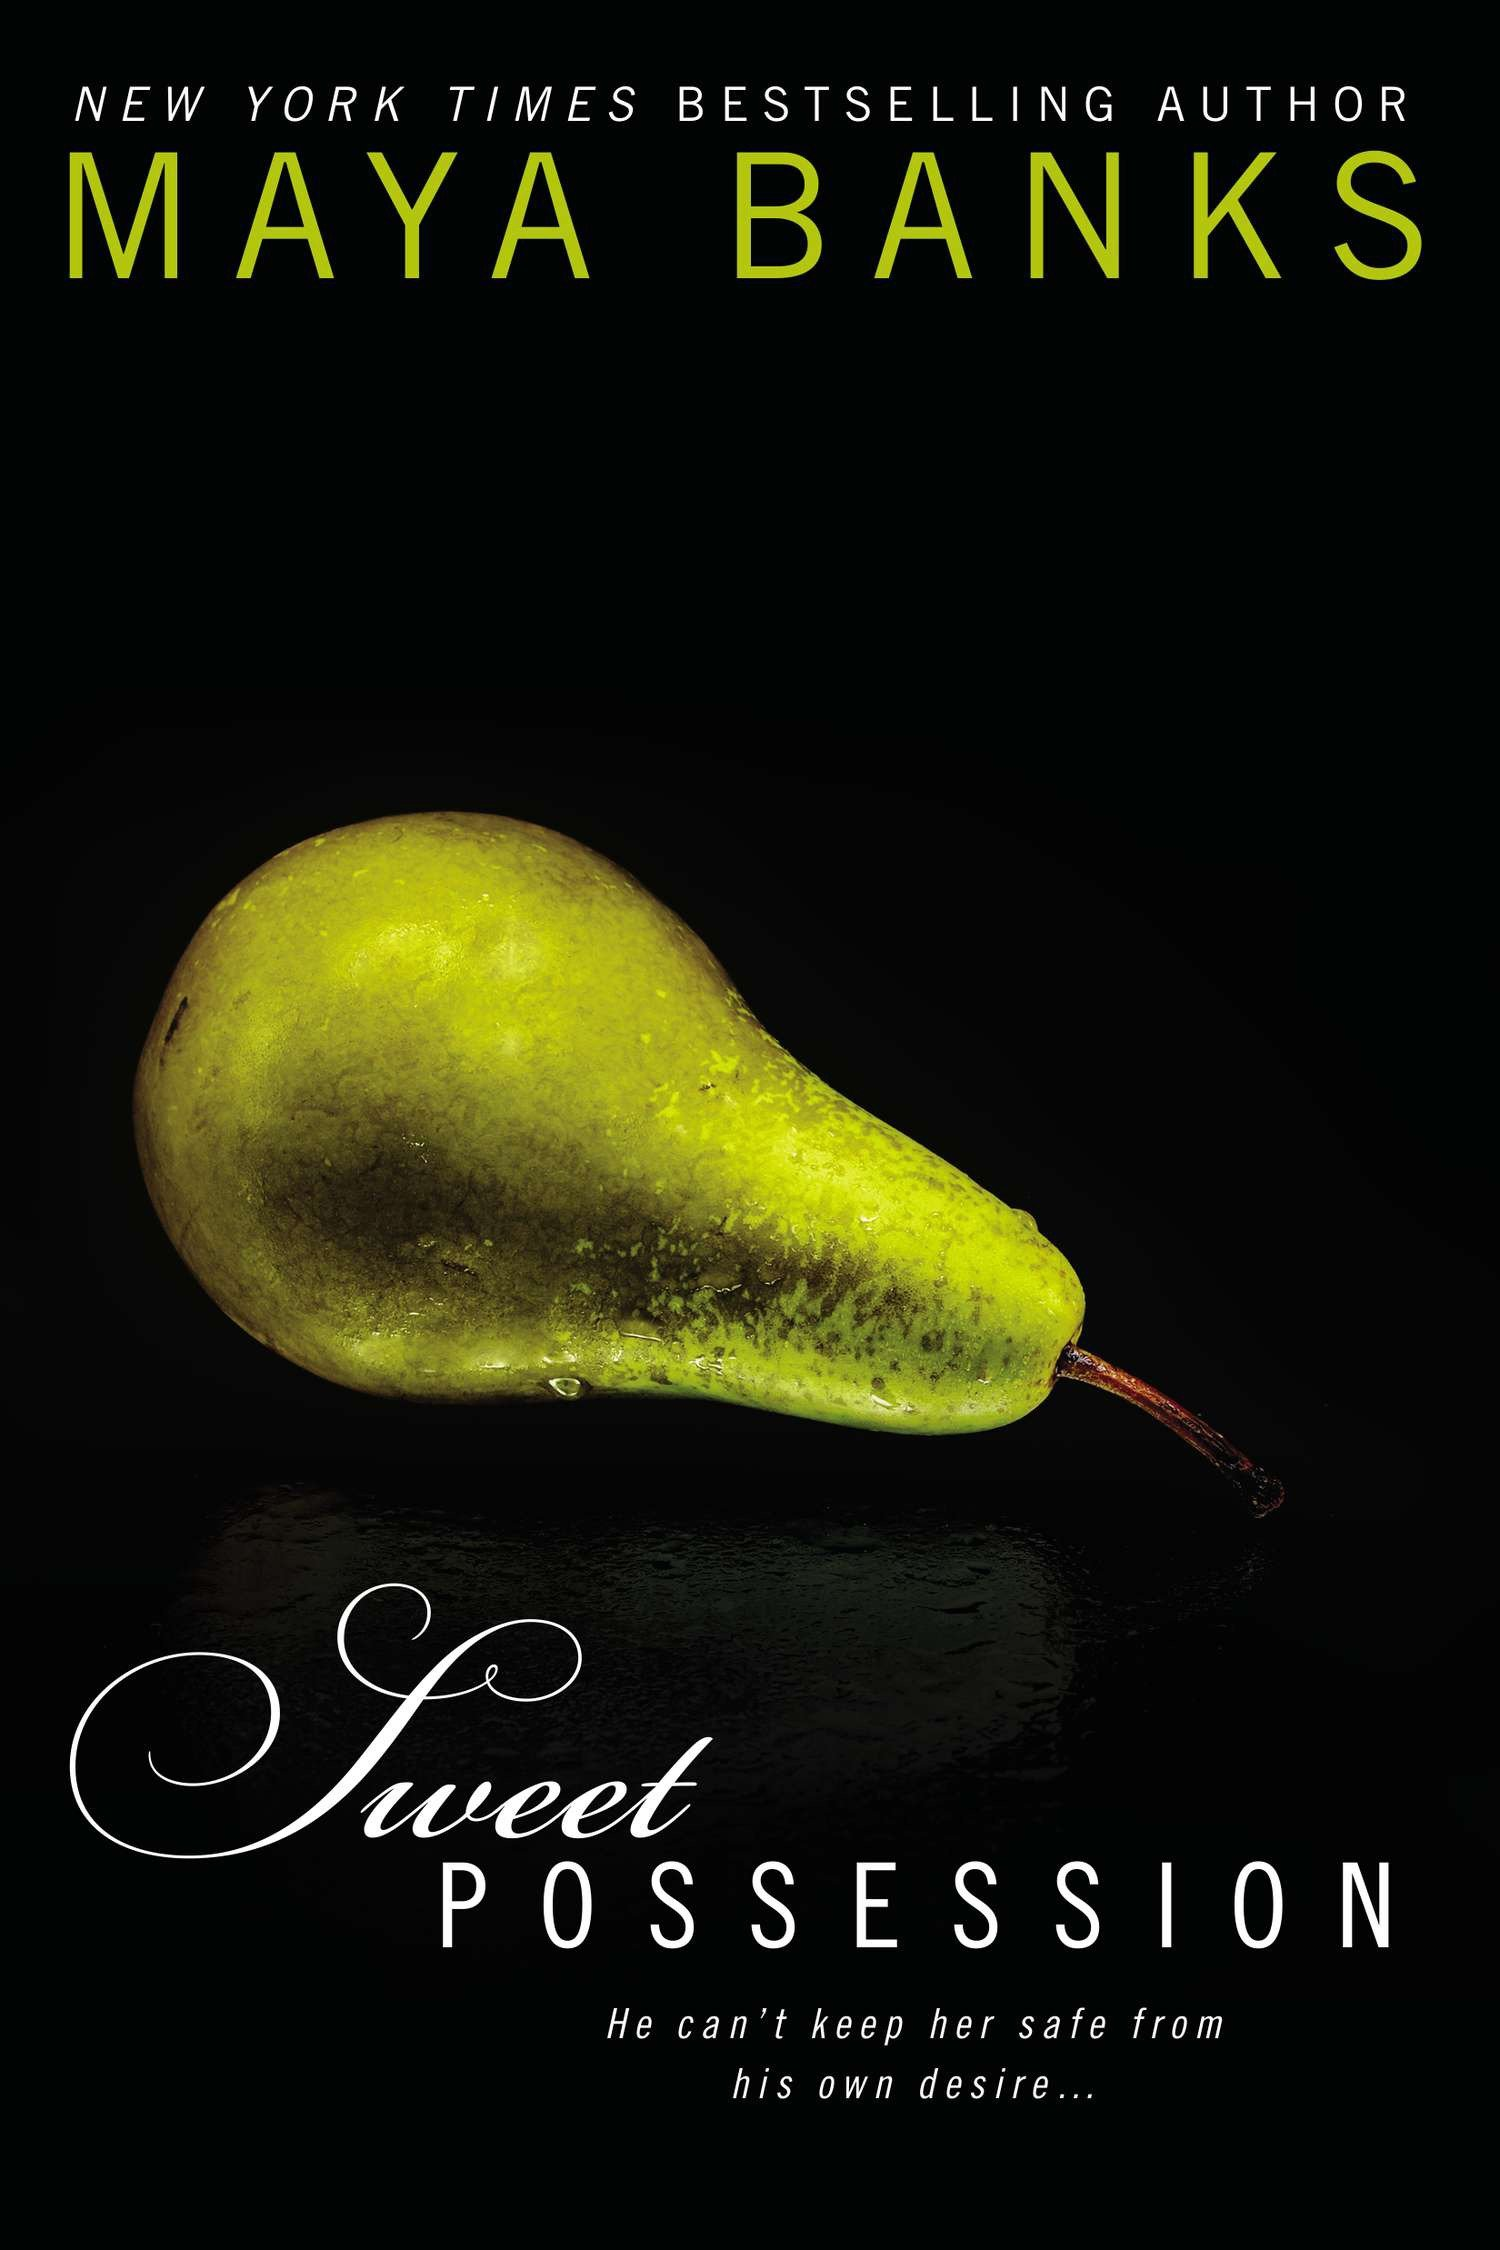 Sweet possession cover image